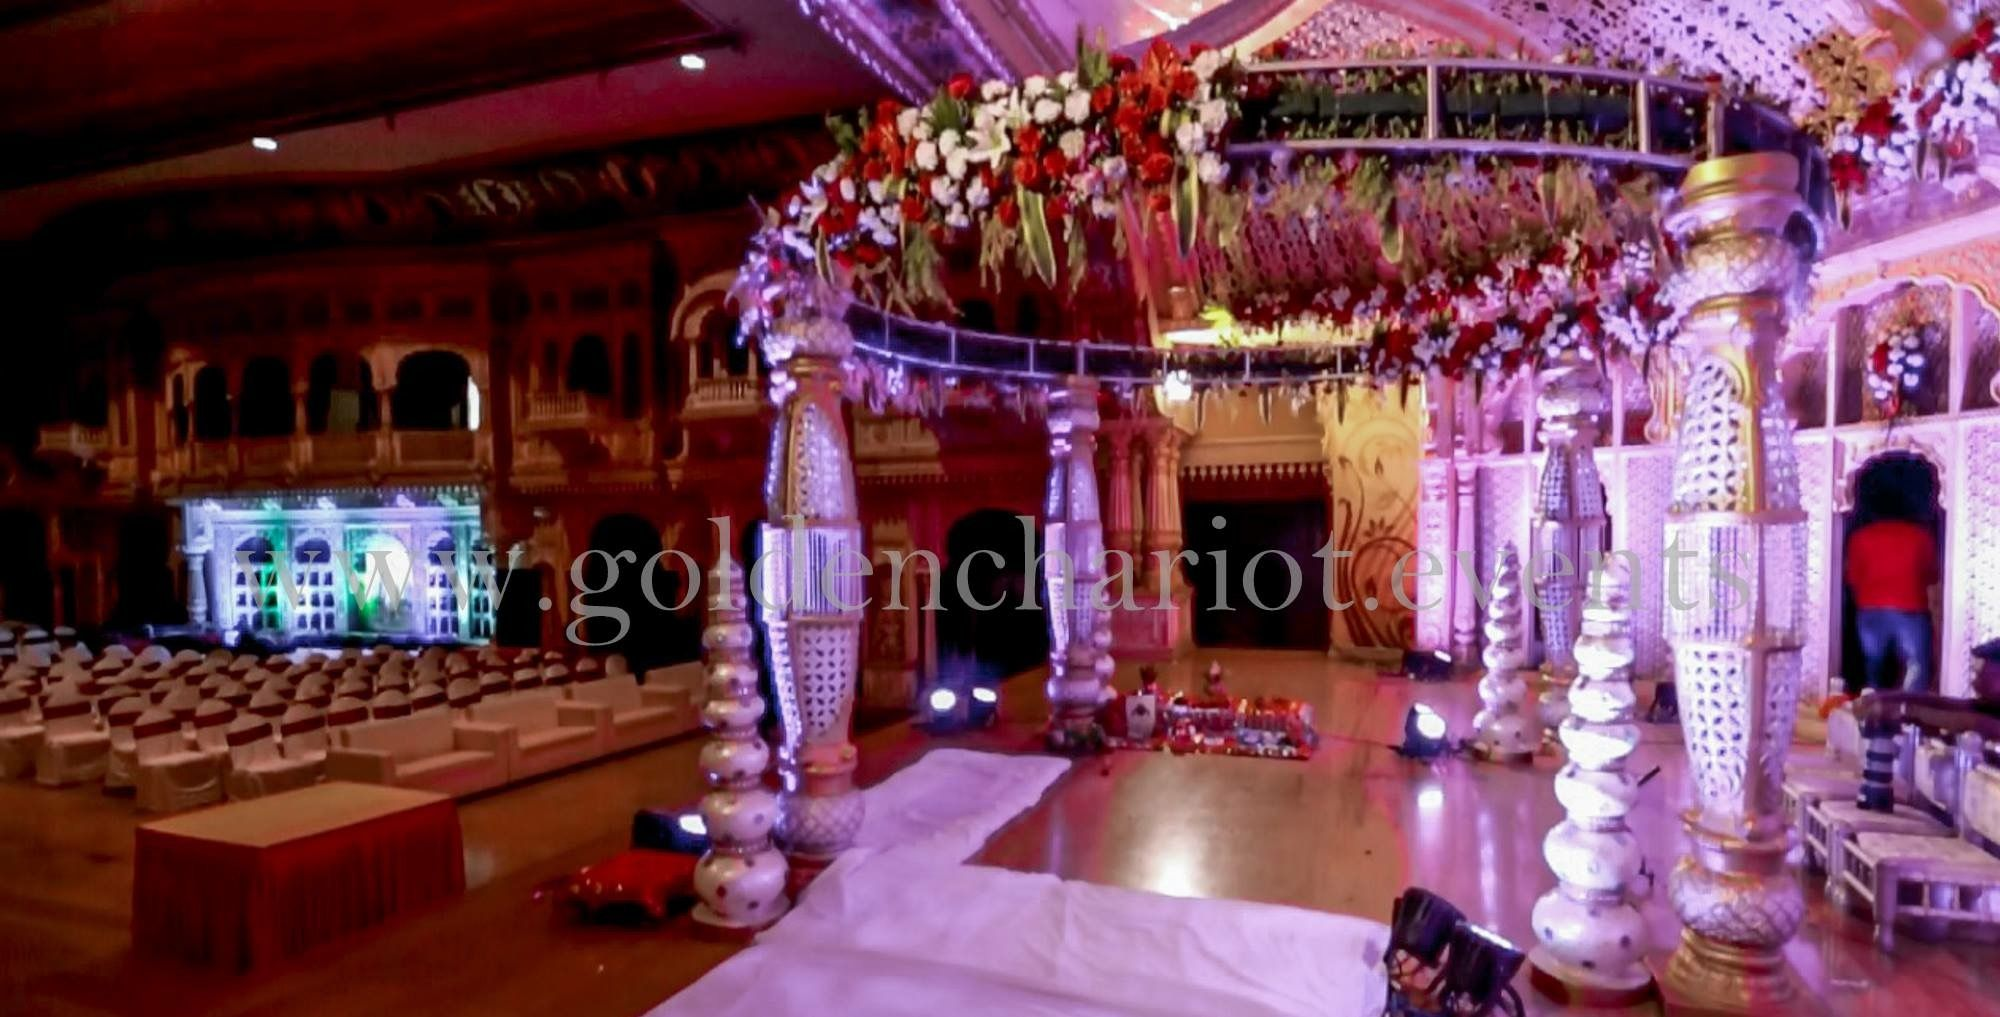 Wedding stage decoration with balloons  goldenchariot Mandap in a circular canopy clasped with